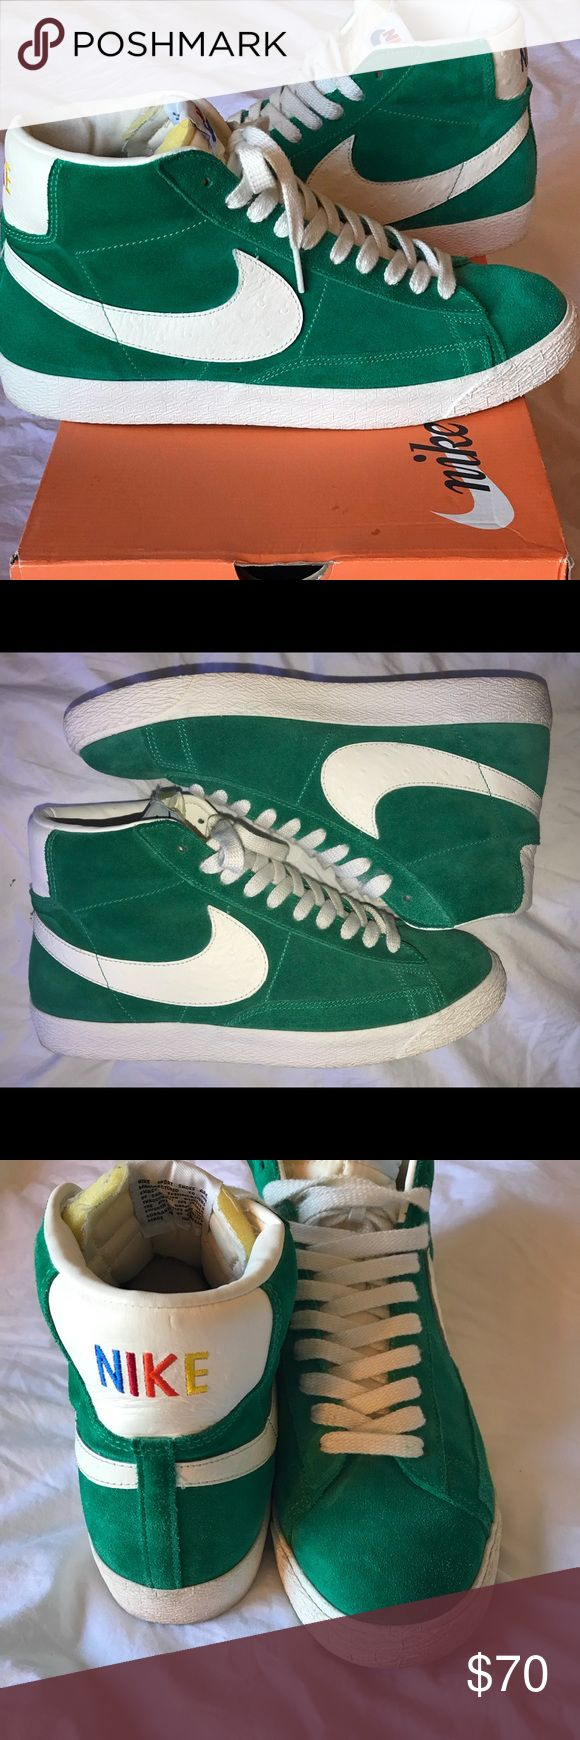 NIKE Blazer mid Premium Vintage RNBW PACK 10.5 Here are a pair of size 10.5 US NIKE blazers in the lucid green color-way. Purchased online from END clothing which is UK based. Worn literally a hand full of times and boxed ever since. These are great to wear casually and add a pop of color for the fall. Nike Shoes Sneakers